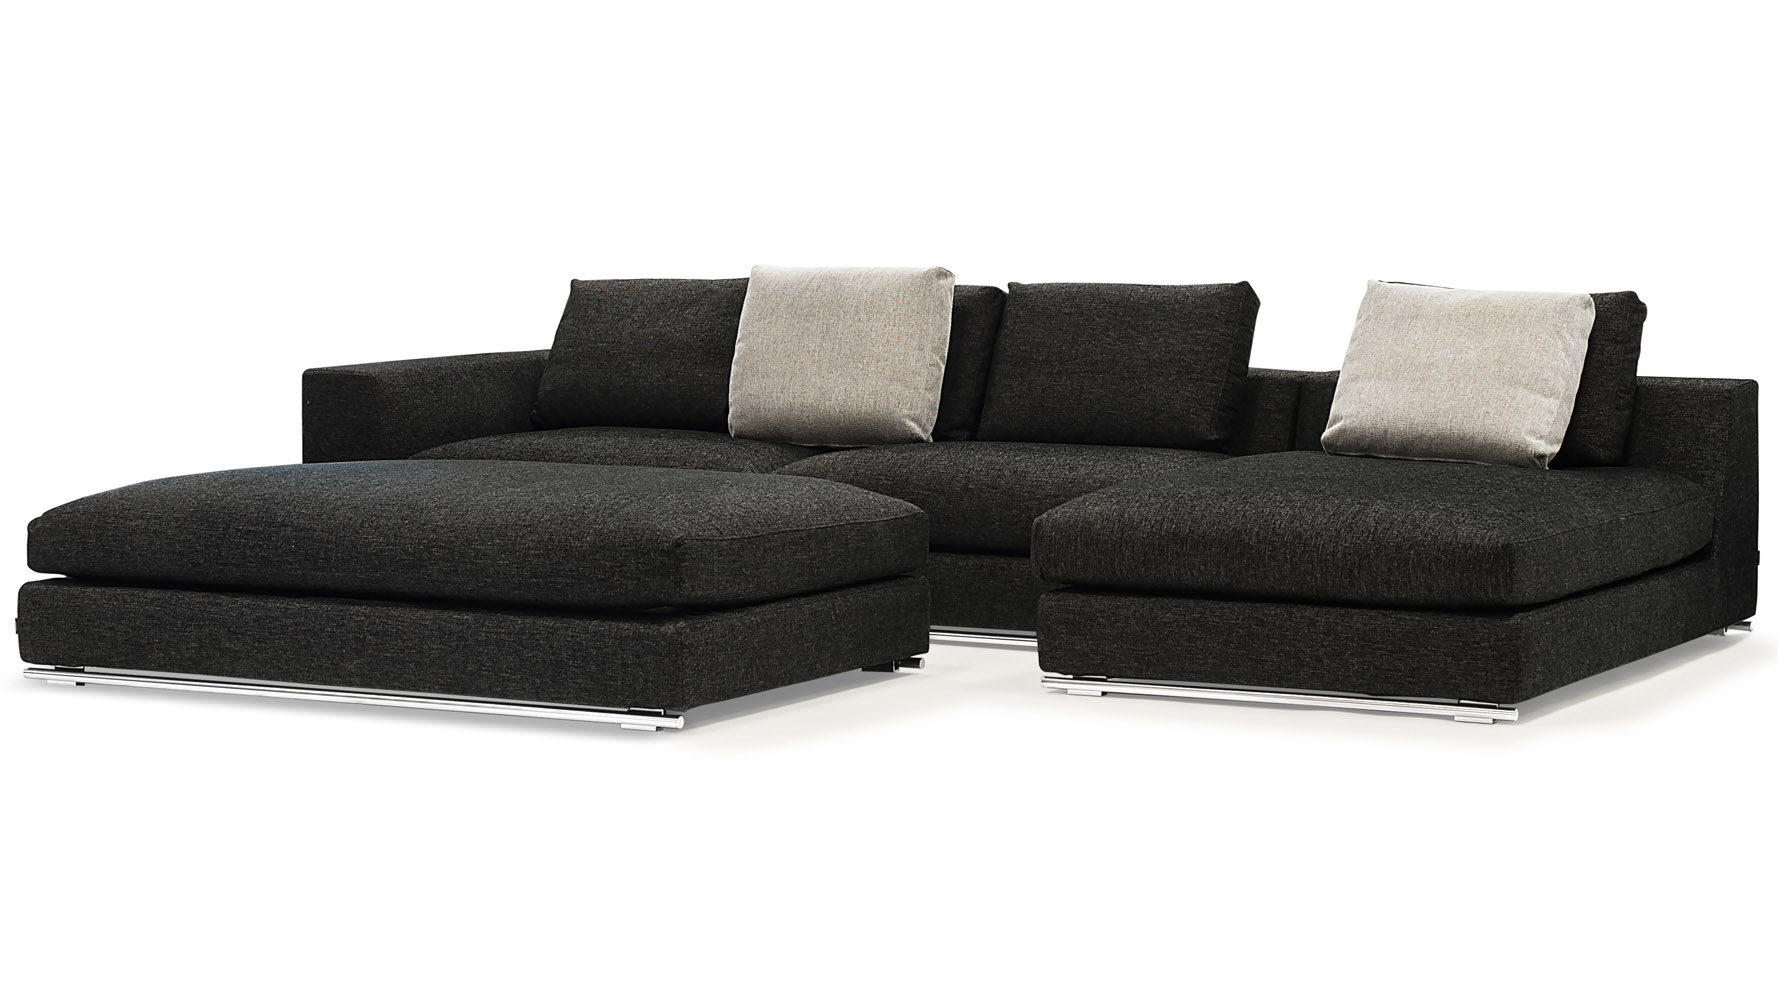 Comodo Sectional Sofa With Ottoman Charcoal Zuri Furniture